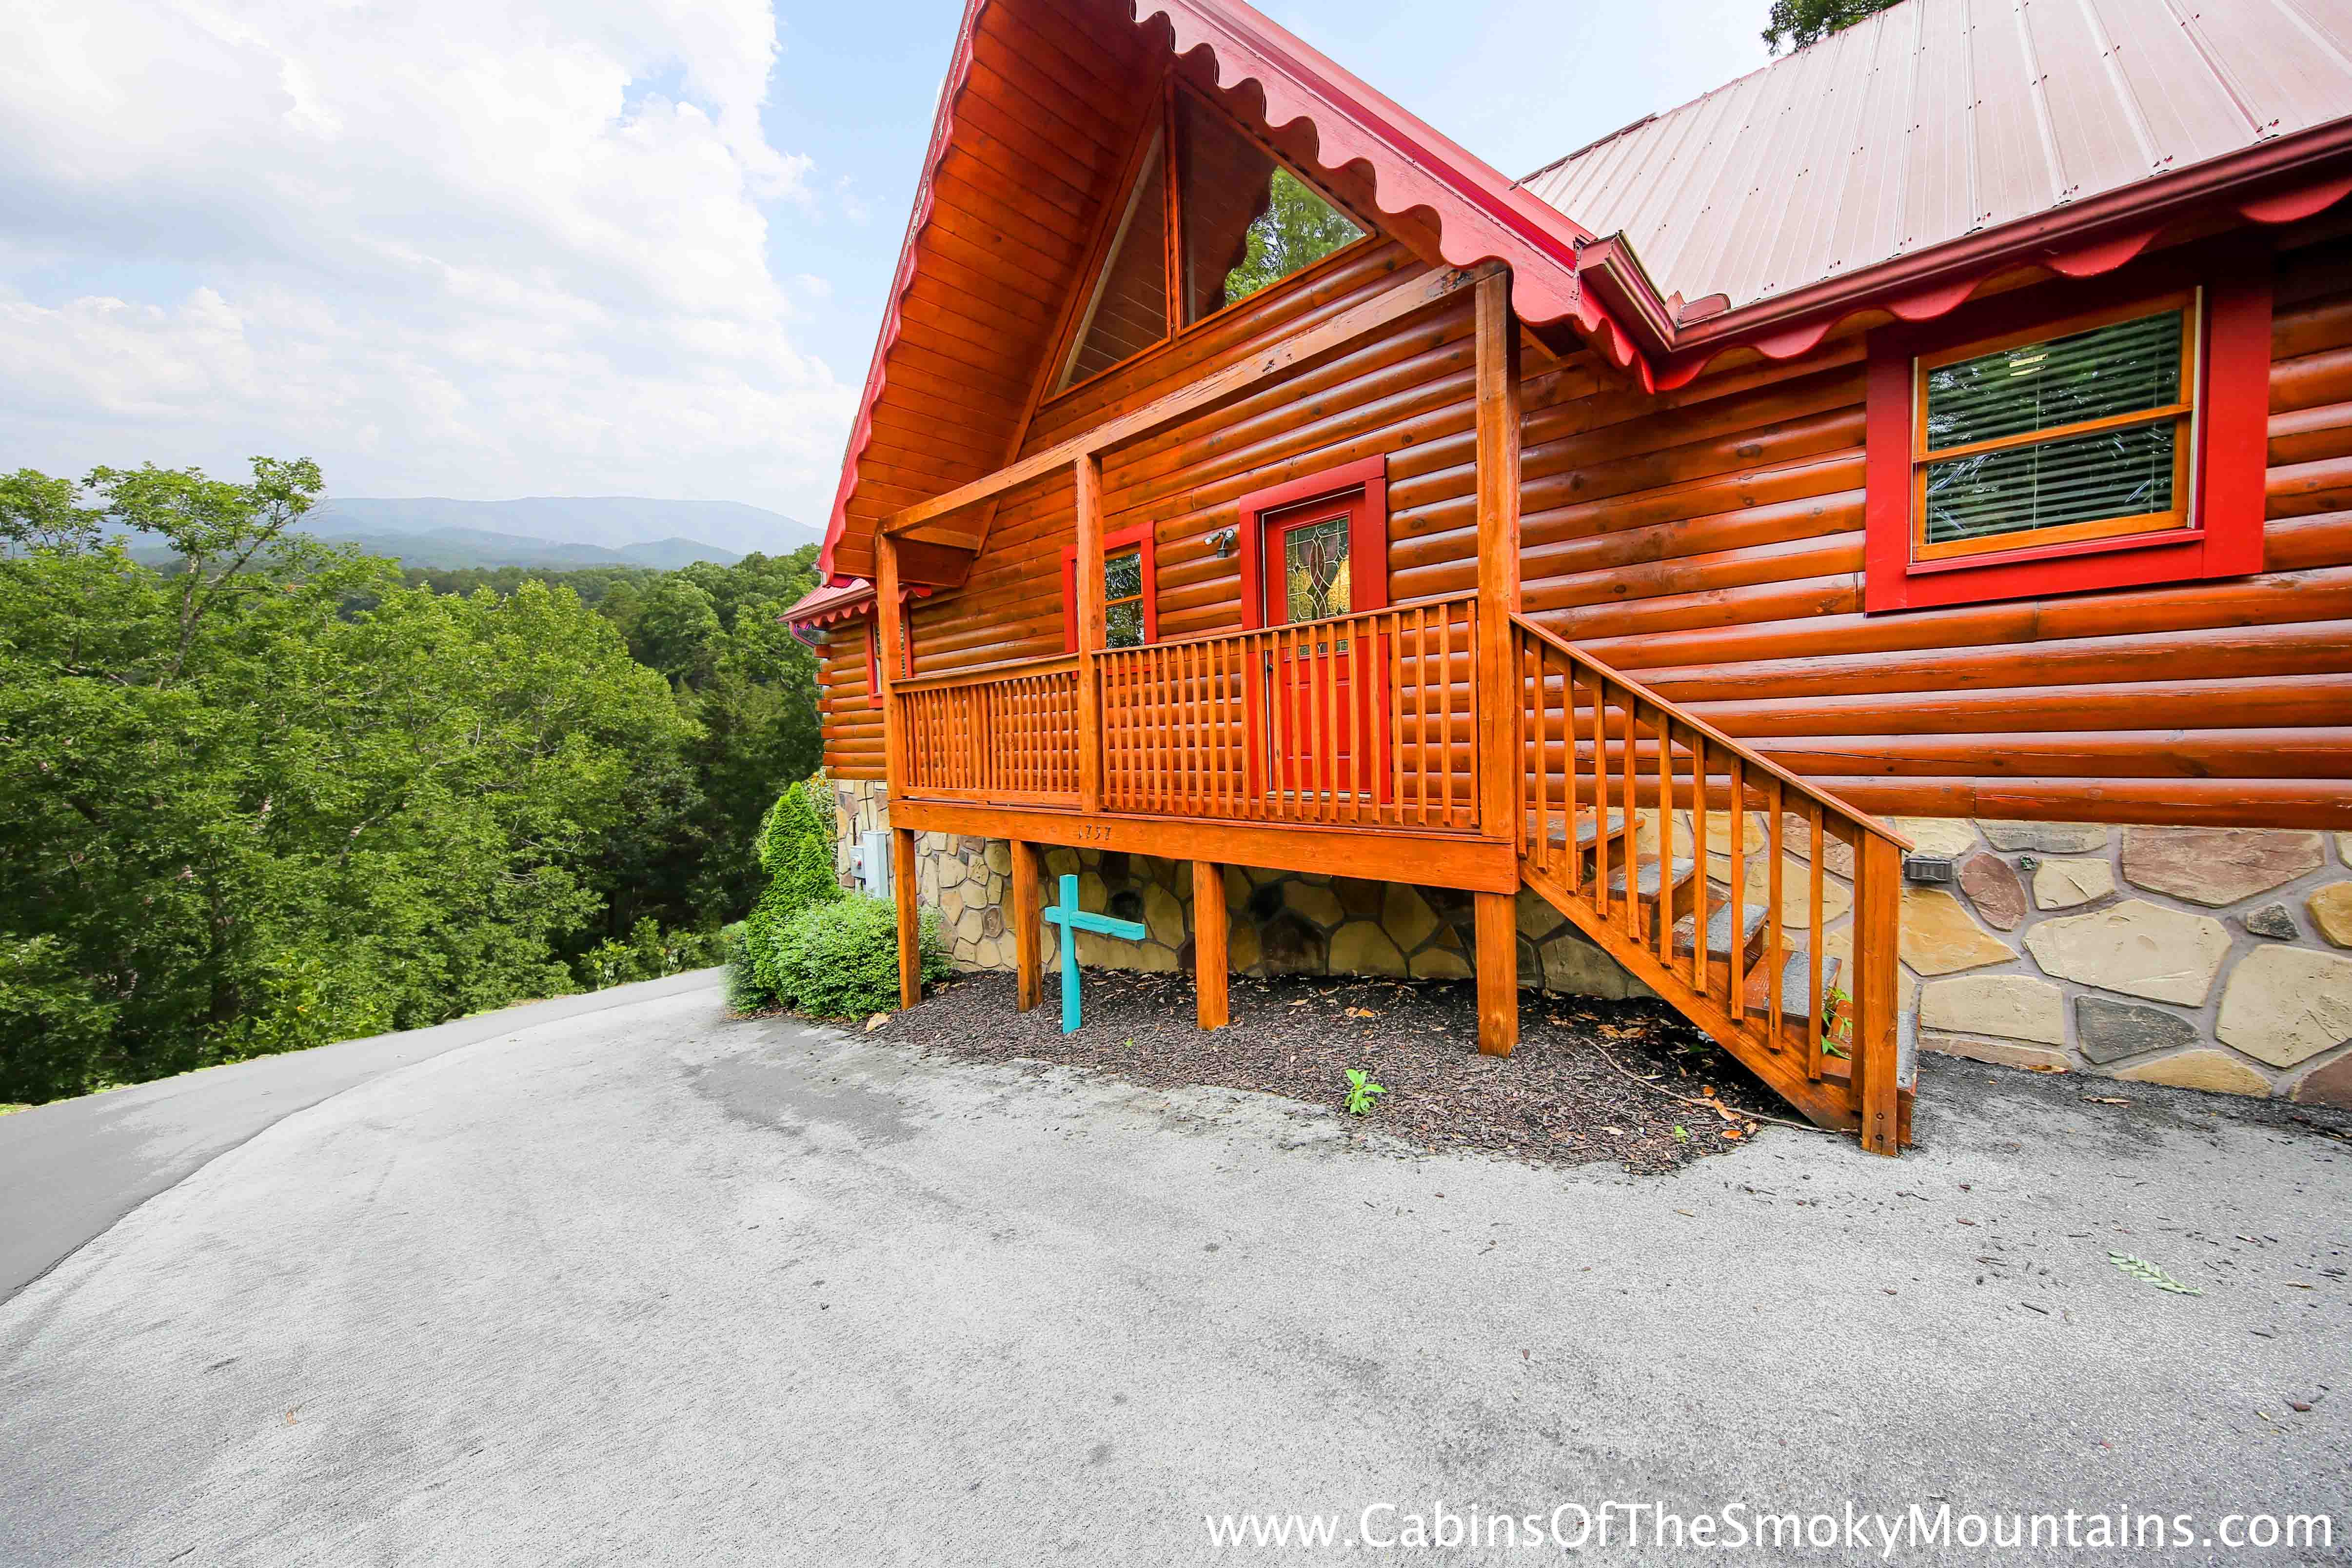 Scenic Wolf Mountain Resort offers North Carolina Mountain Vacation Rental Cabins, Cottages and Real Estate in Mars Hill, Wolf Laurel, Western North Carolina, just 20 minutes from The Great Smoky Mountains.